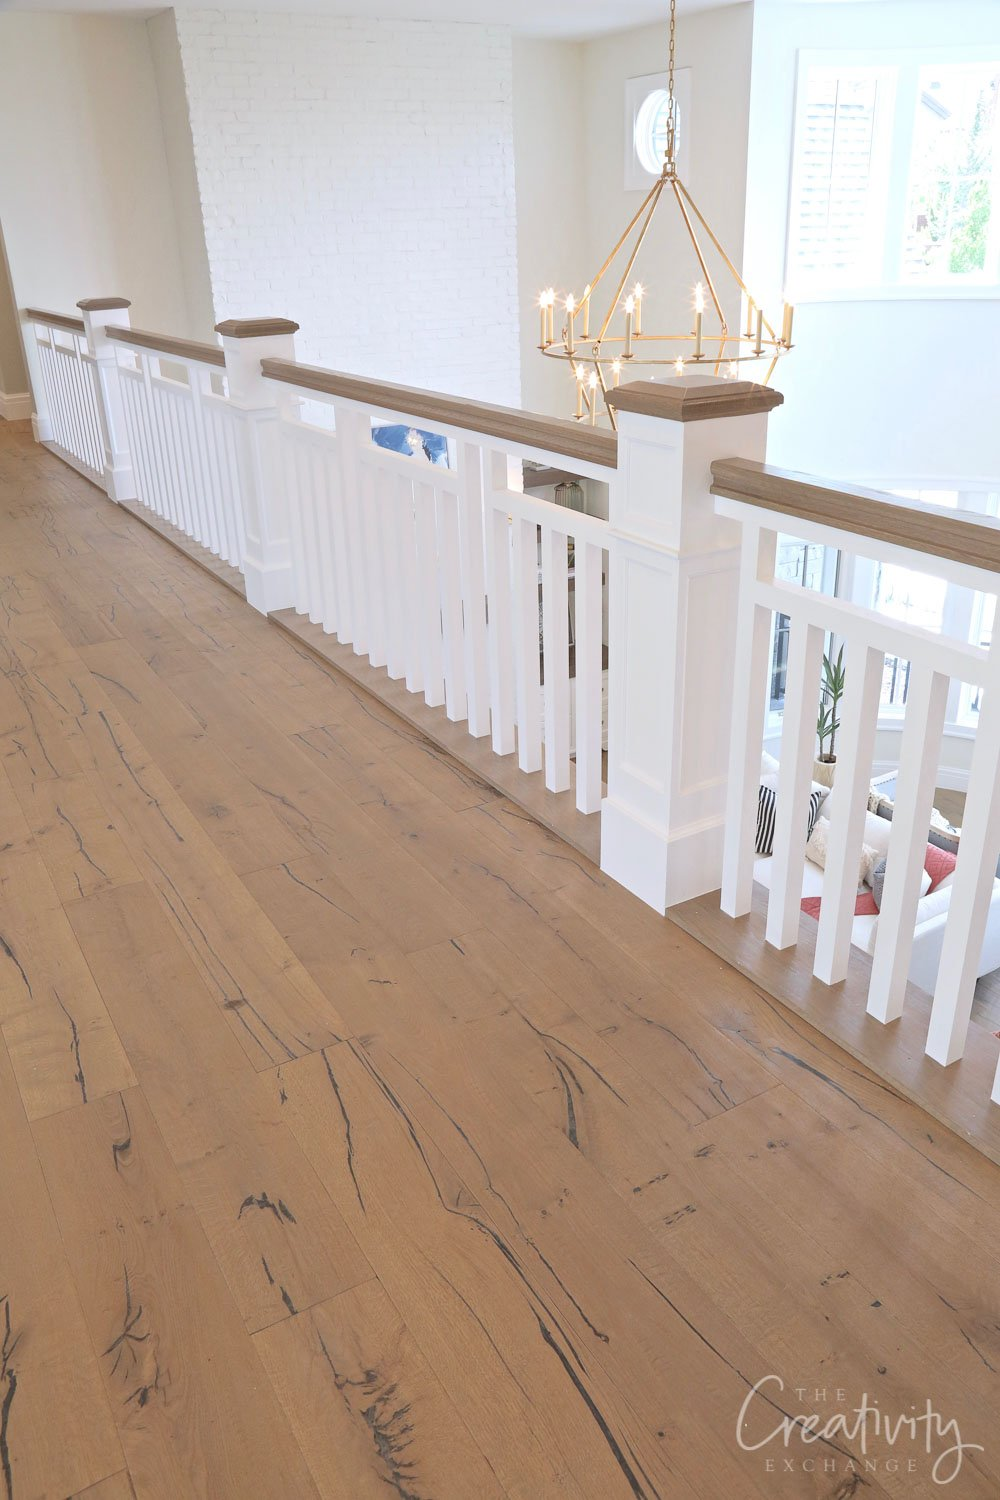 Solid white oak wide planked oil rubbed floors